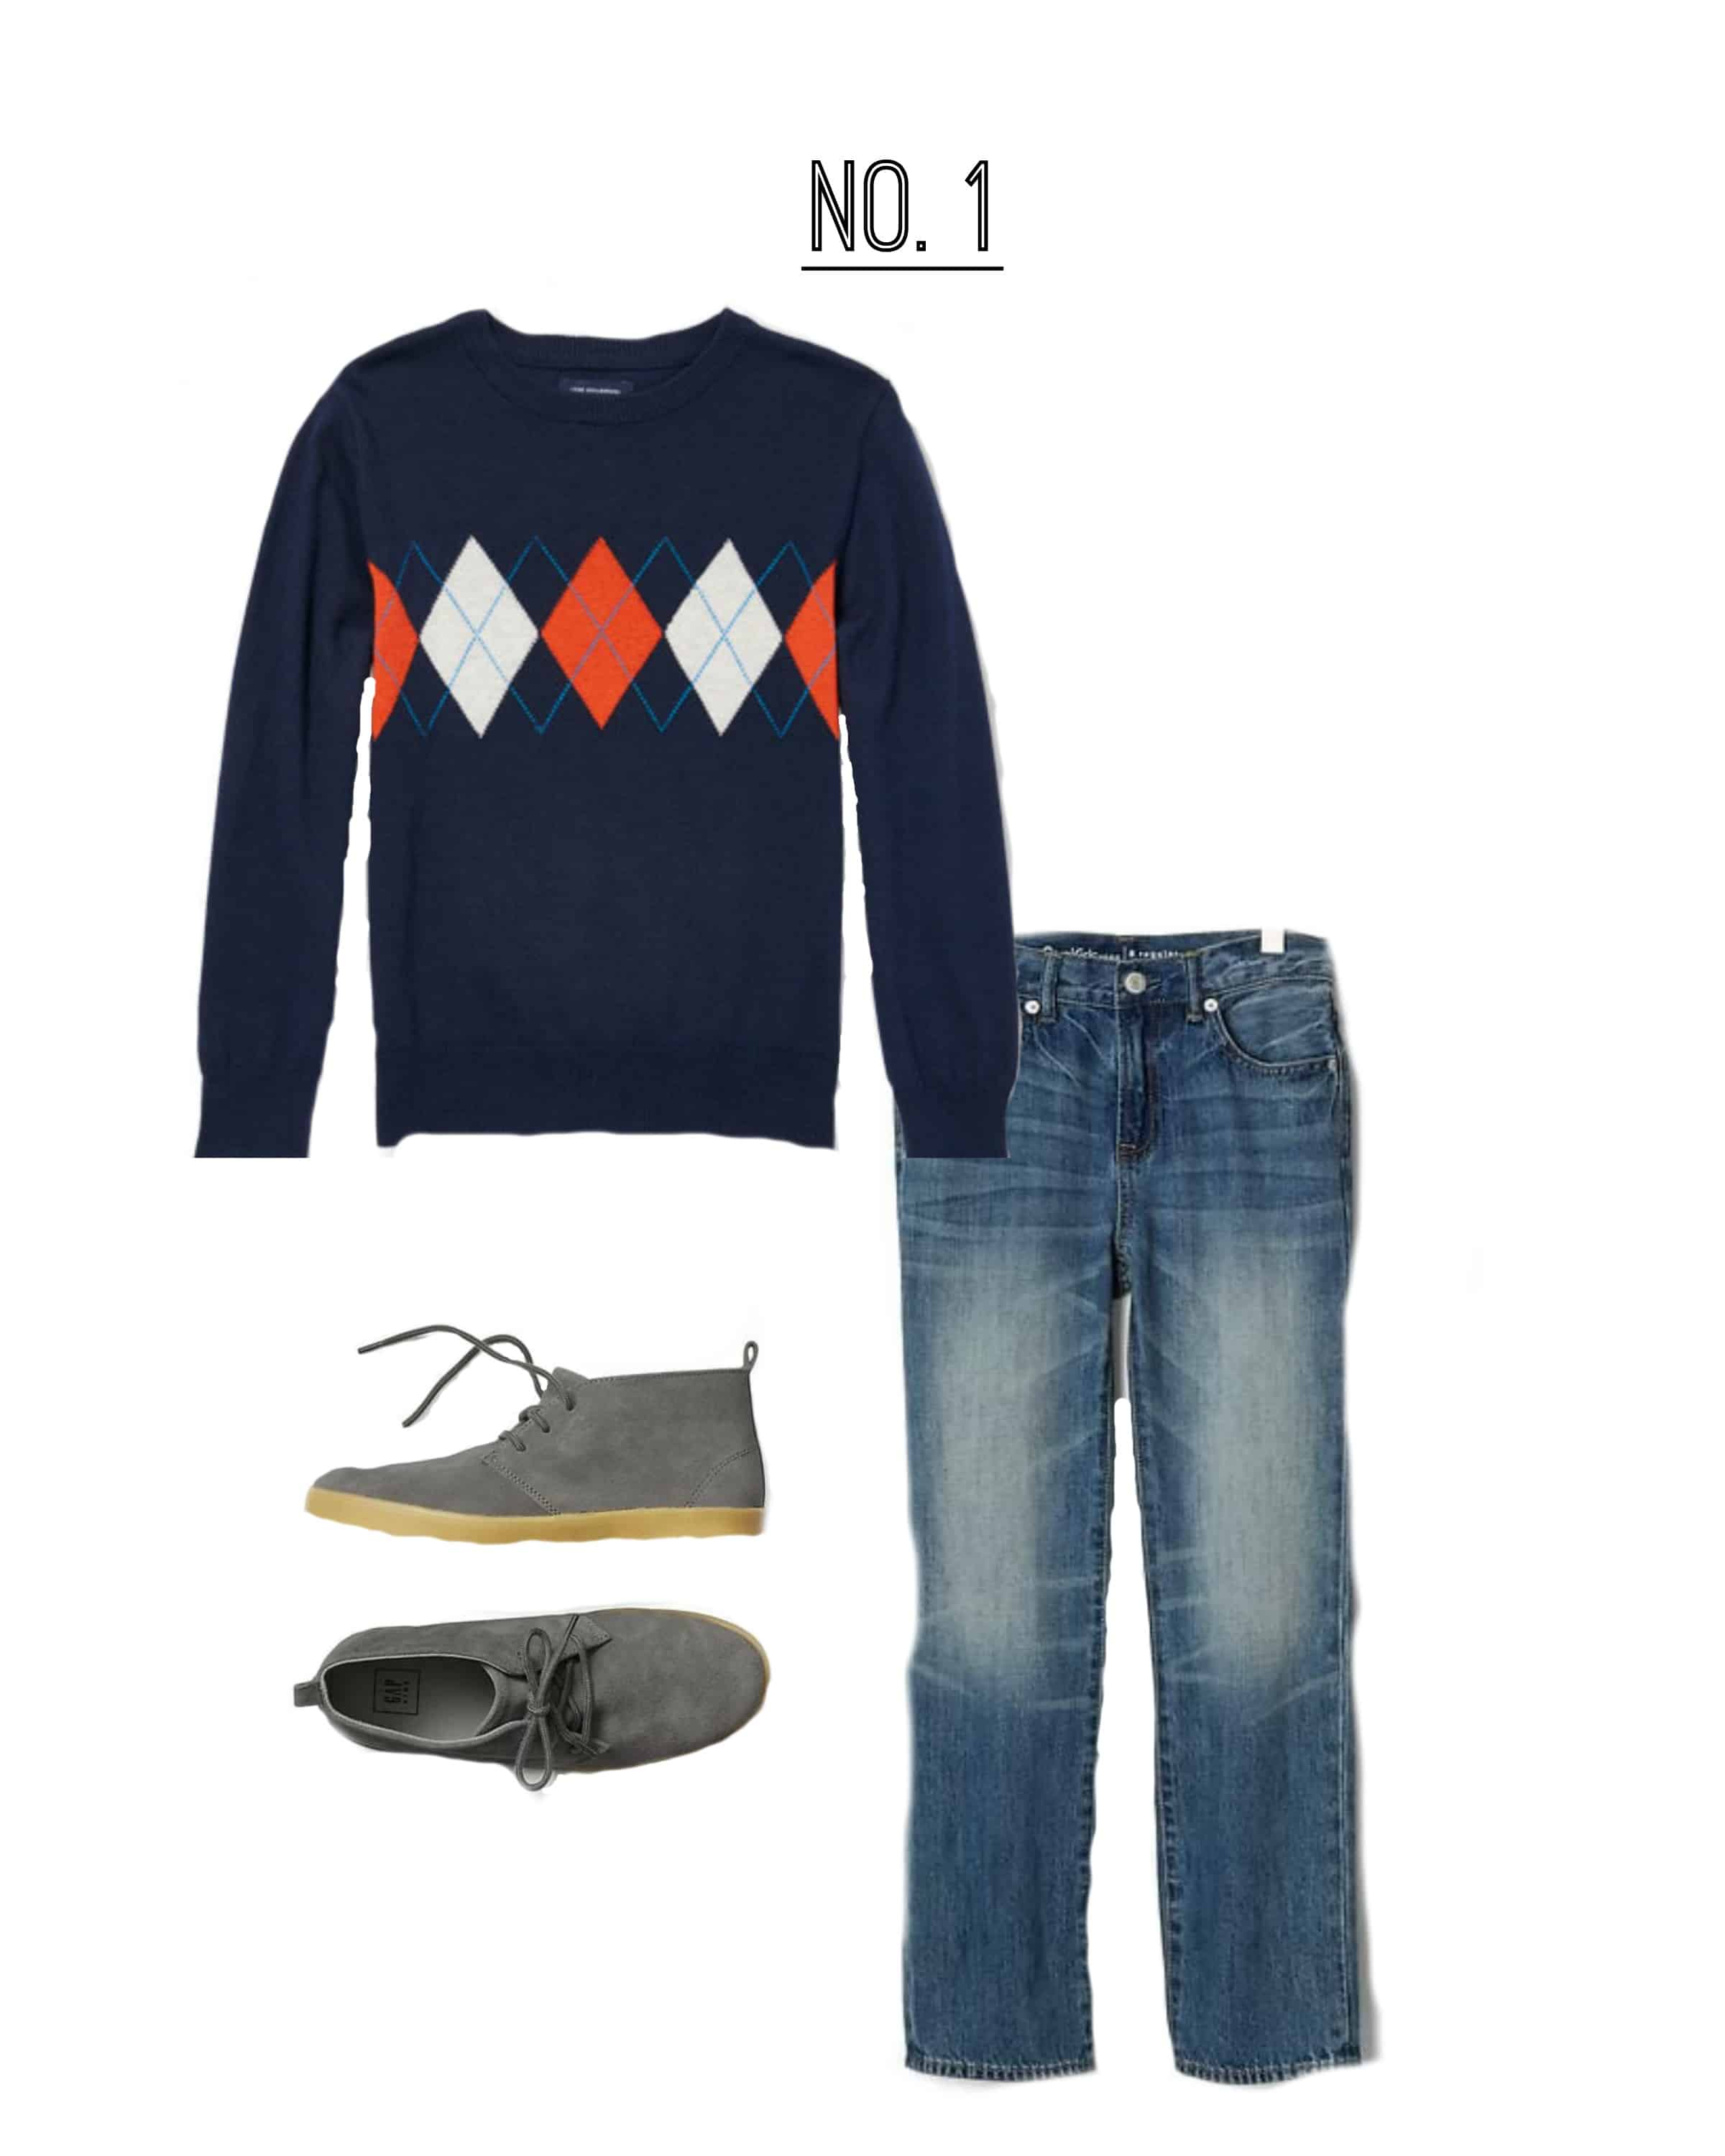 A fantastic outfit for a boy to wear for Fall family photos!